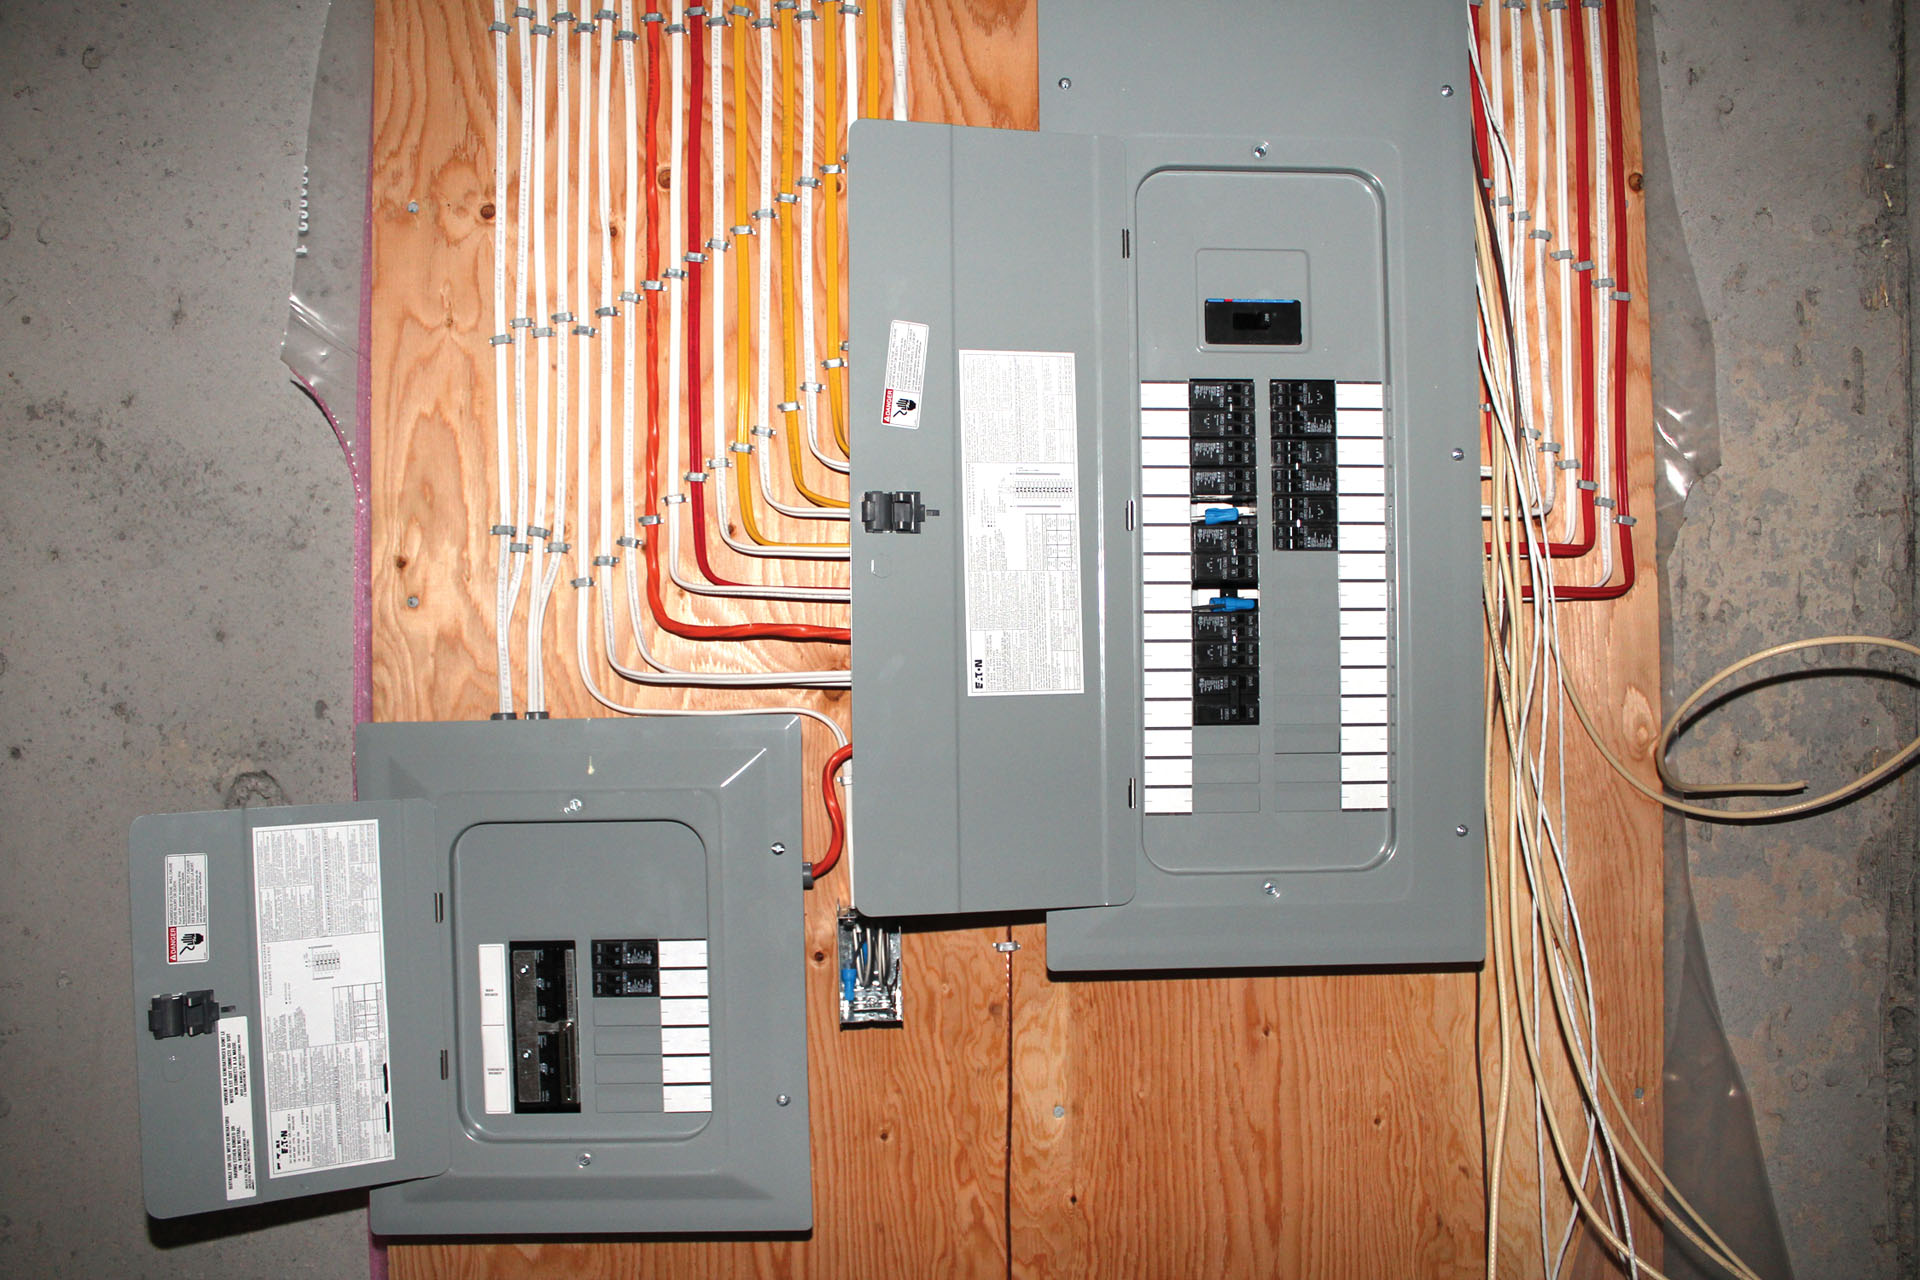 Tips For Installing A Backup Generator In Your Home Cabin Diy Wiring Subpanel An Effort To Get Back Up Power Running Quickly With Little Set And No Extension Cords Mervin Suggests Manual Transfer Switch Along